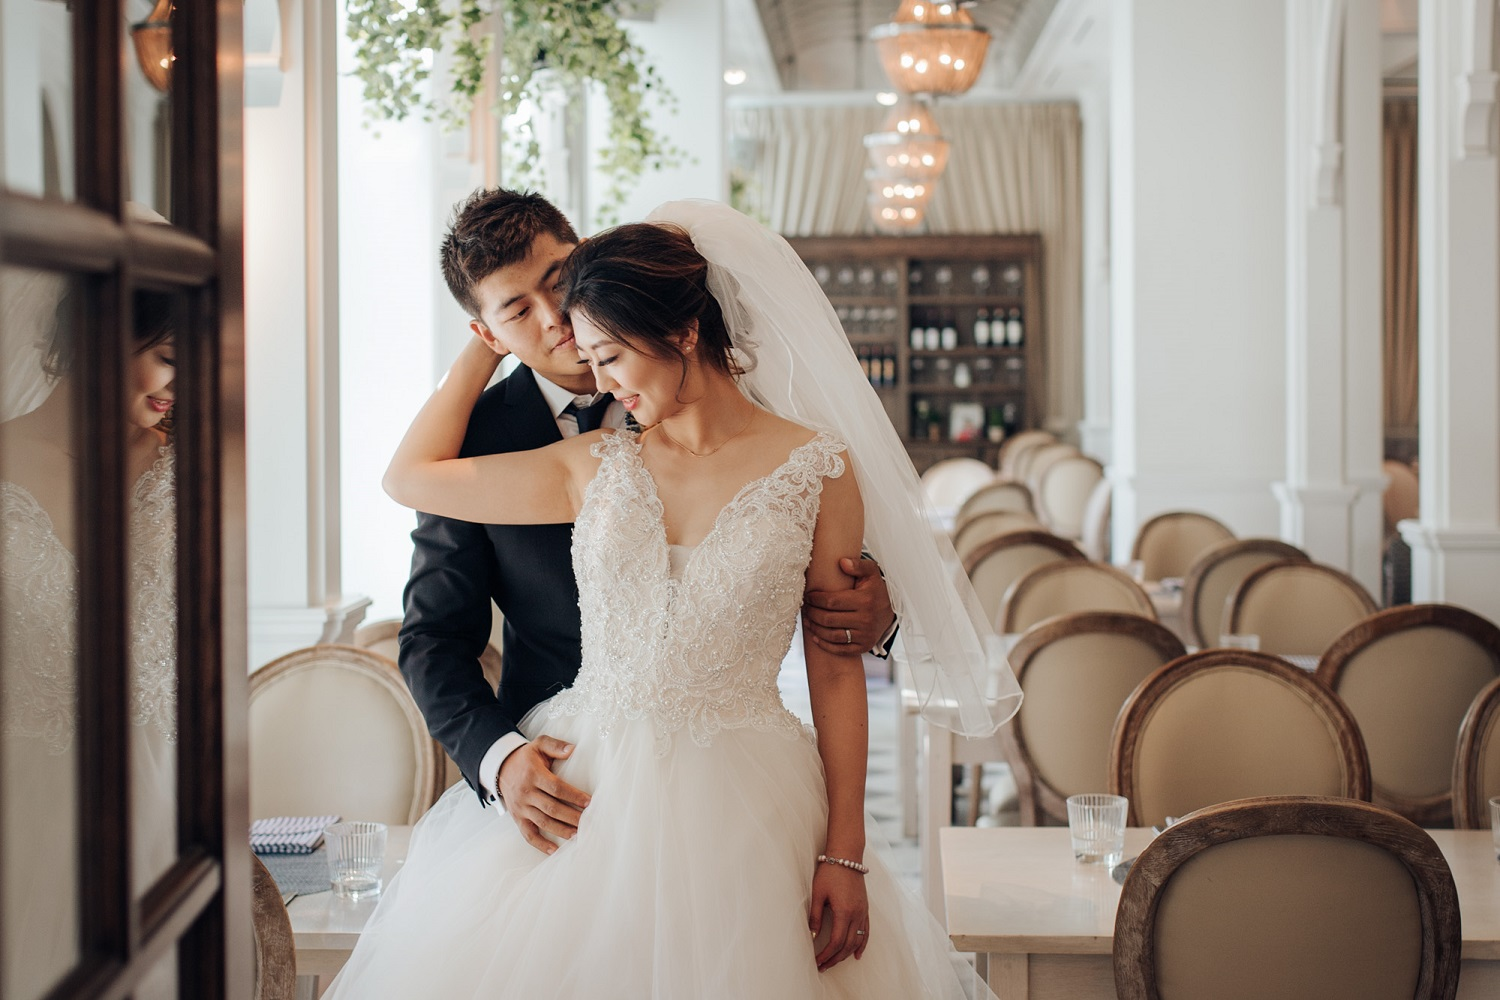 Wedding at the Colette Grand Cafe in Toronto indoor portrait feature